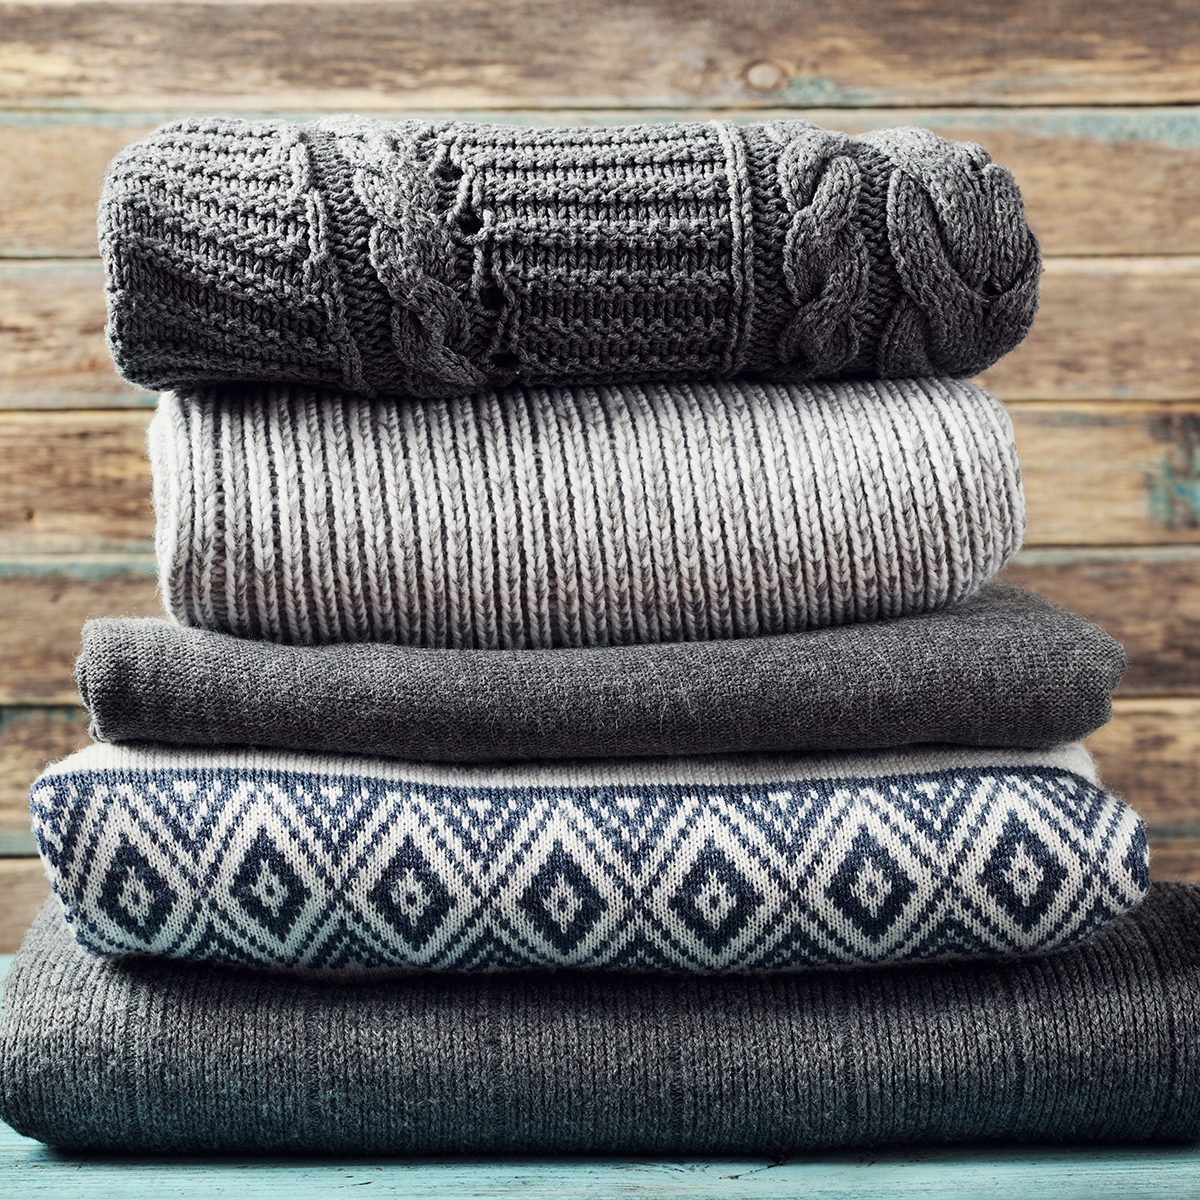 Pile of knitted winter clothes on wooden background, sweaters, knitwear